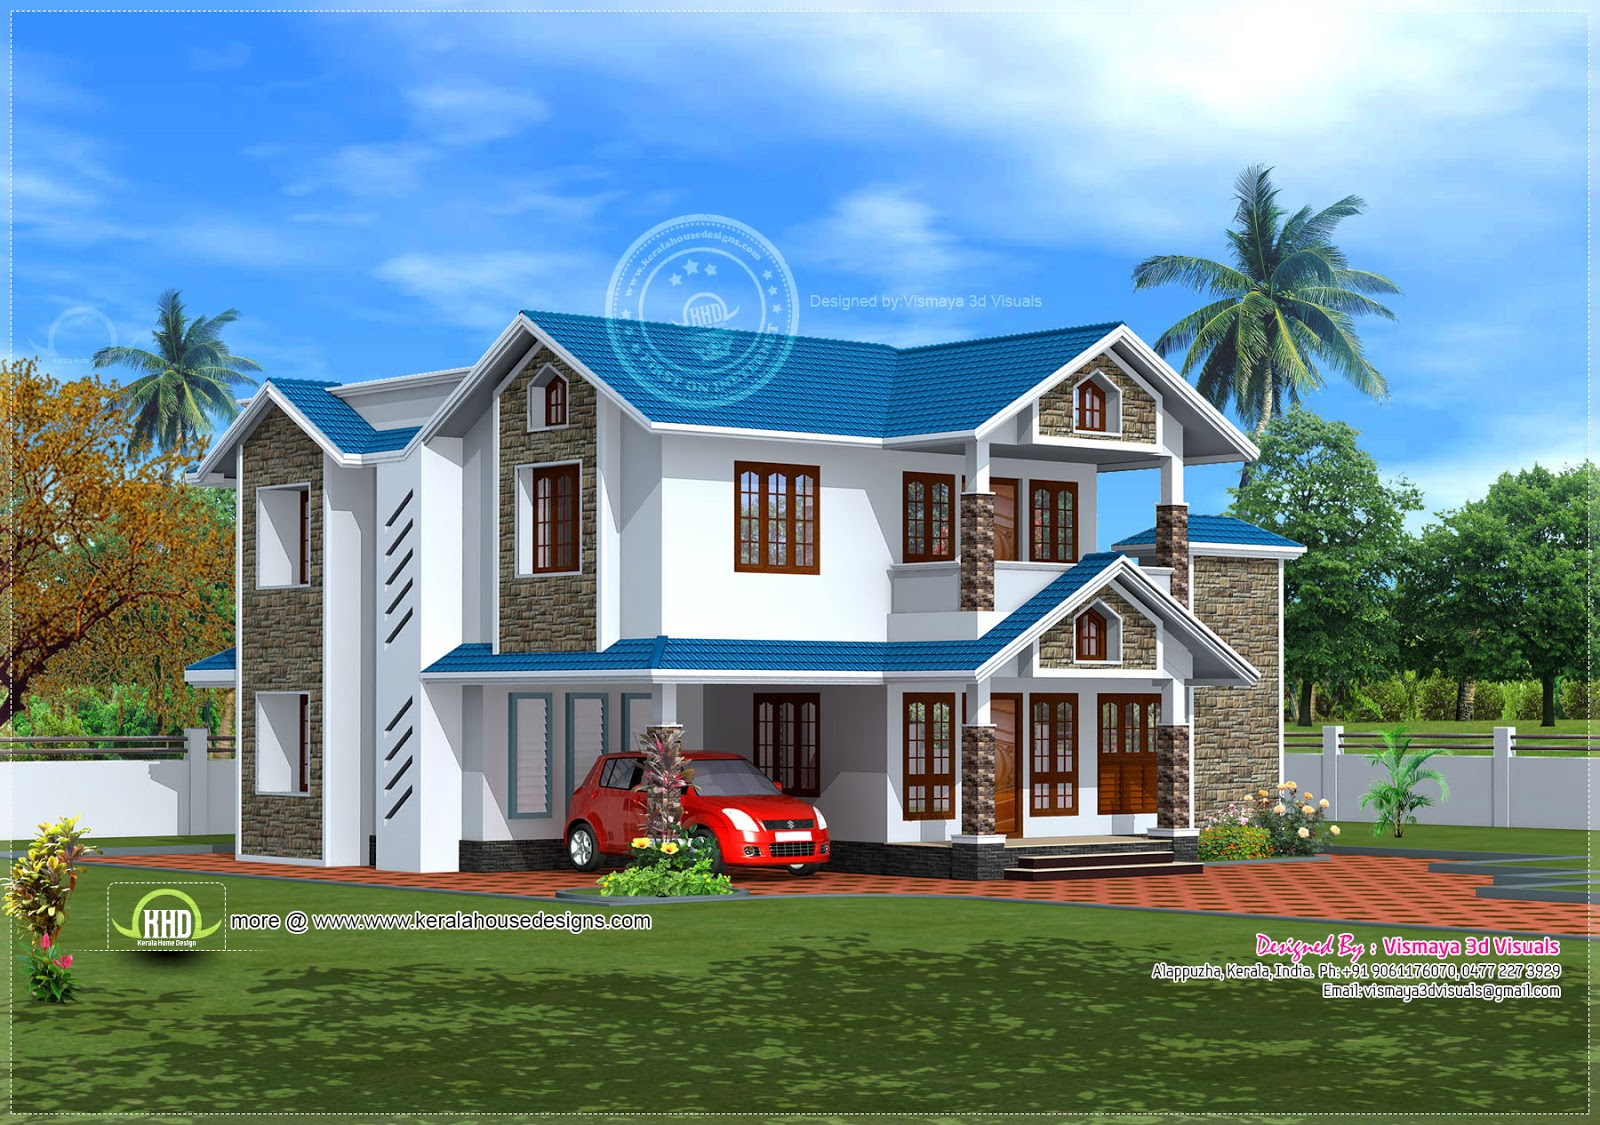 vismaya 3d visuals house plan joy studio design gallery